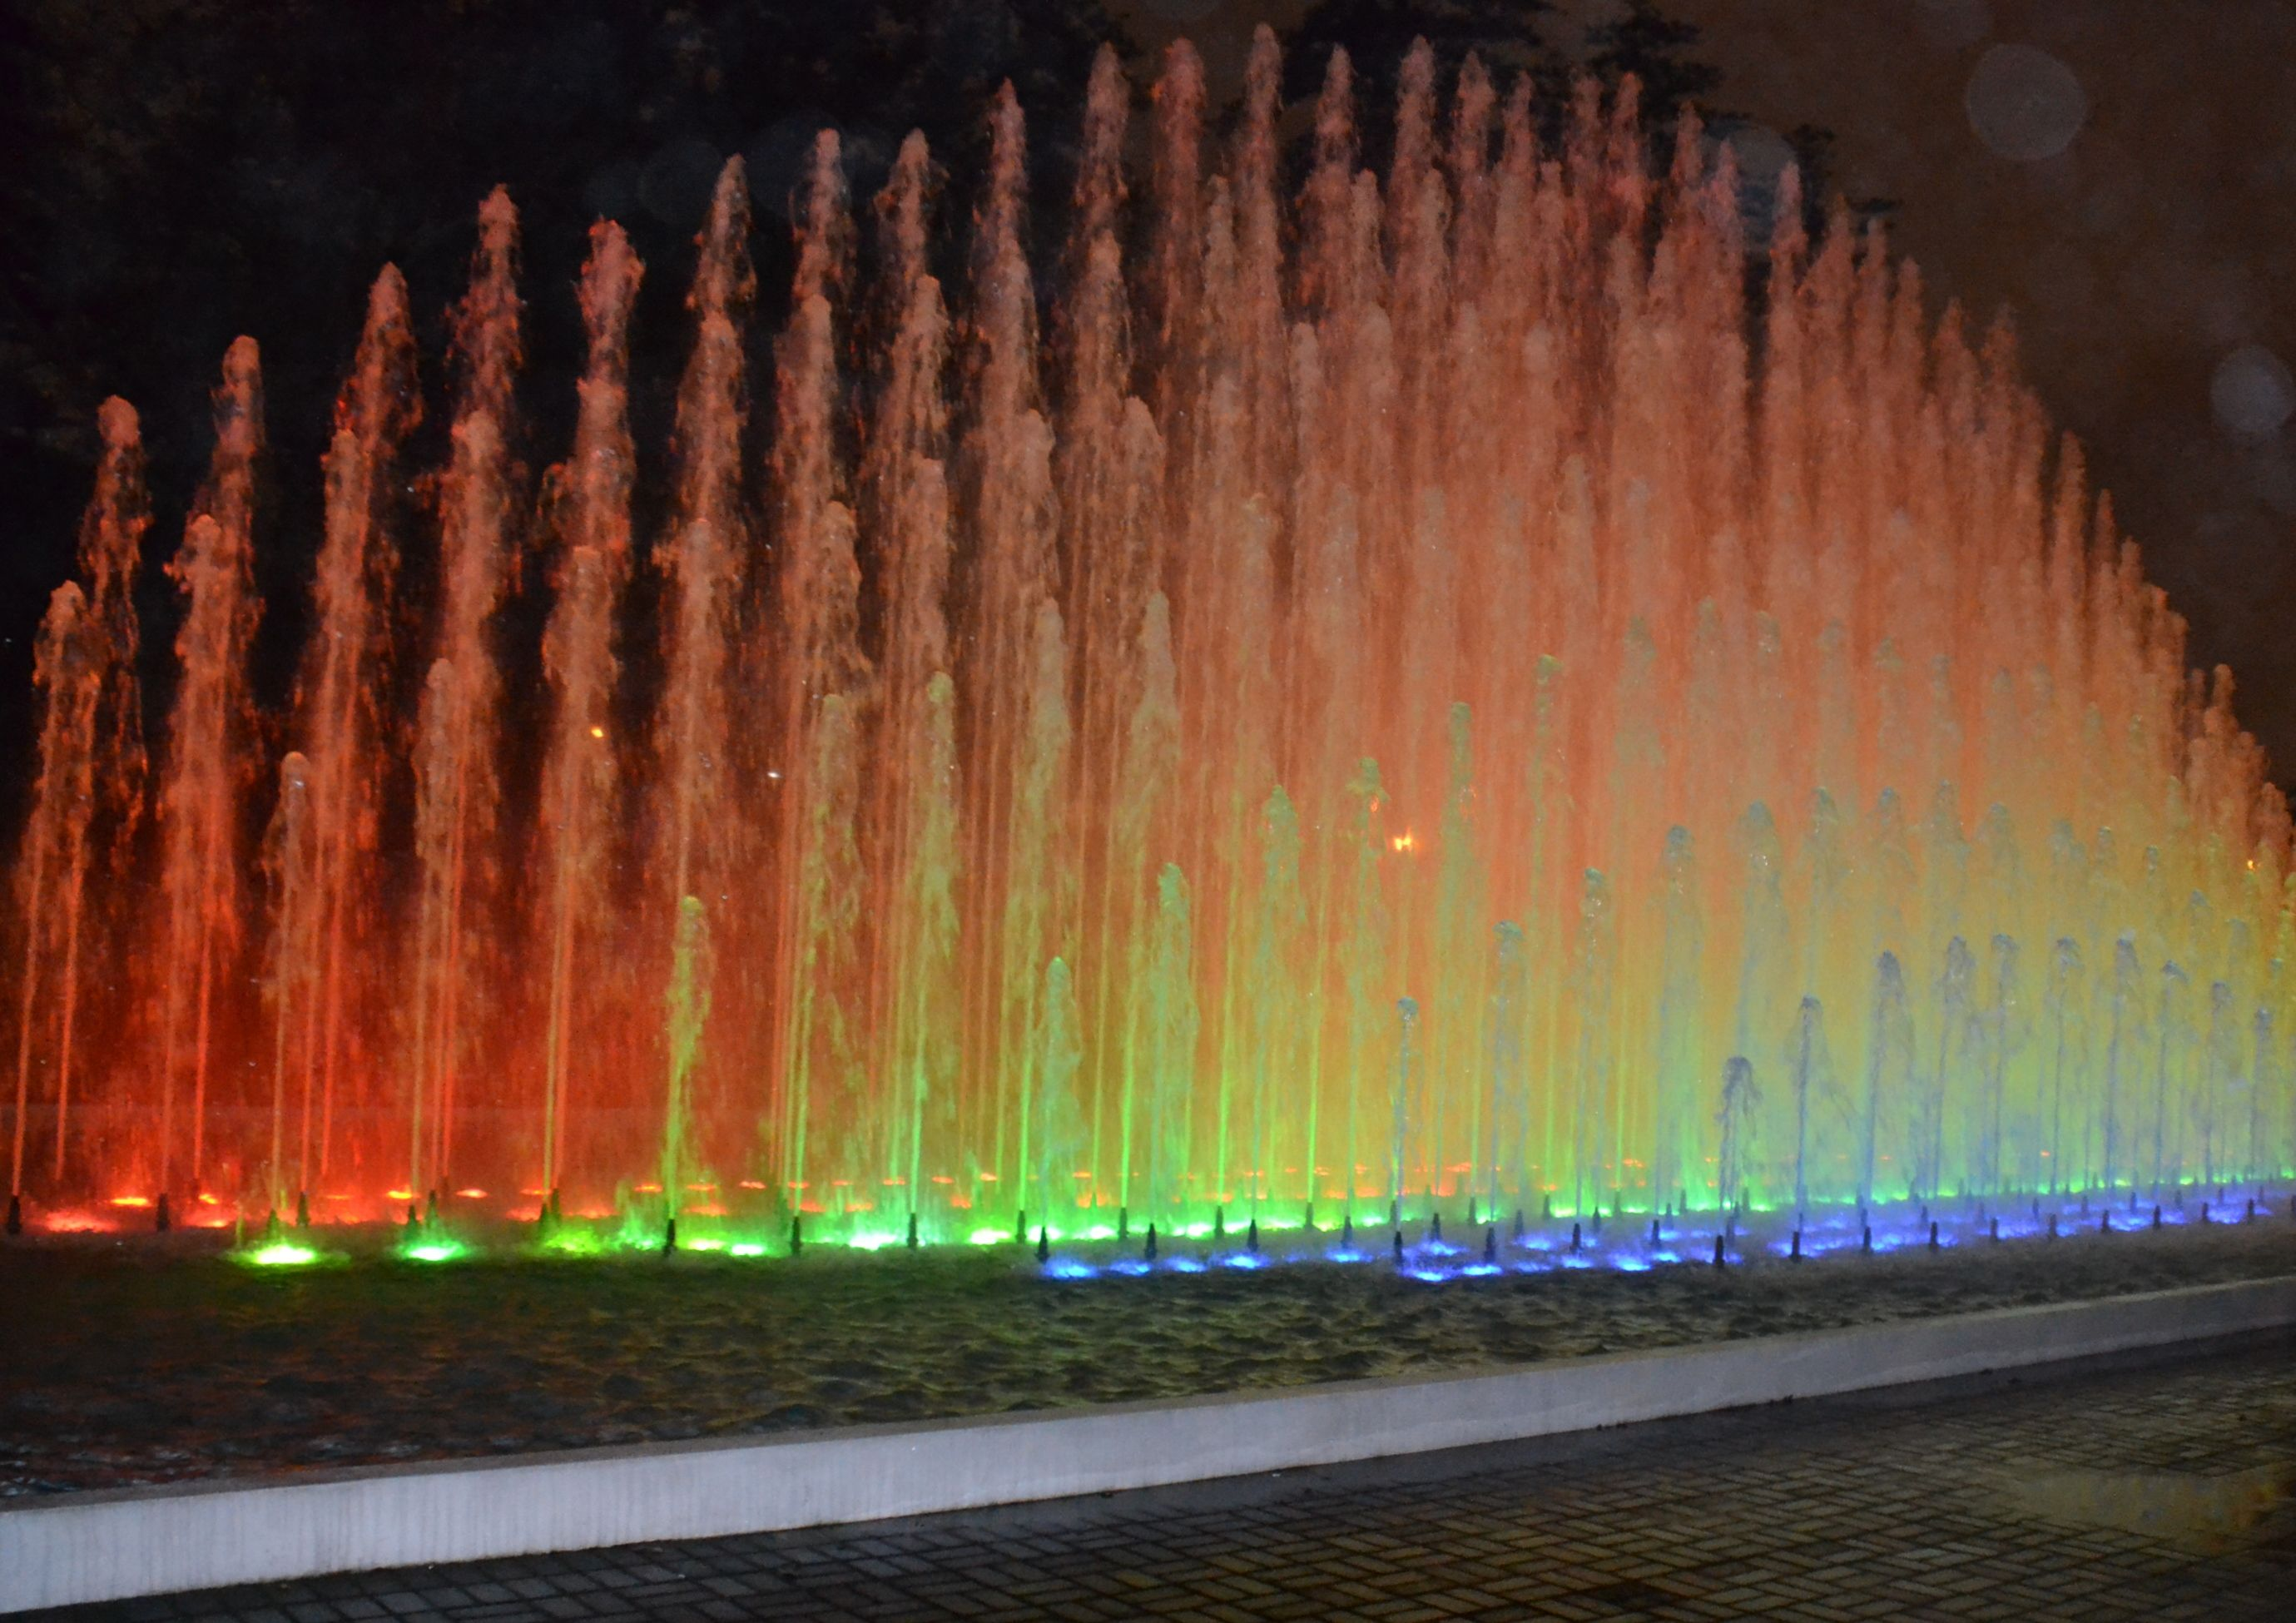 Water fountains lima - Fountain In Magic Circuit Of Water In Lima Peru Largest Display Of Fountains In